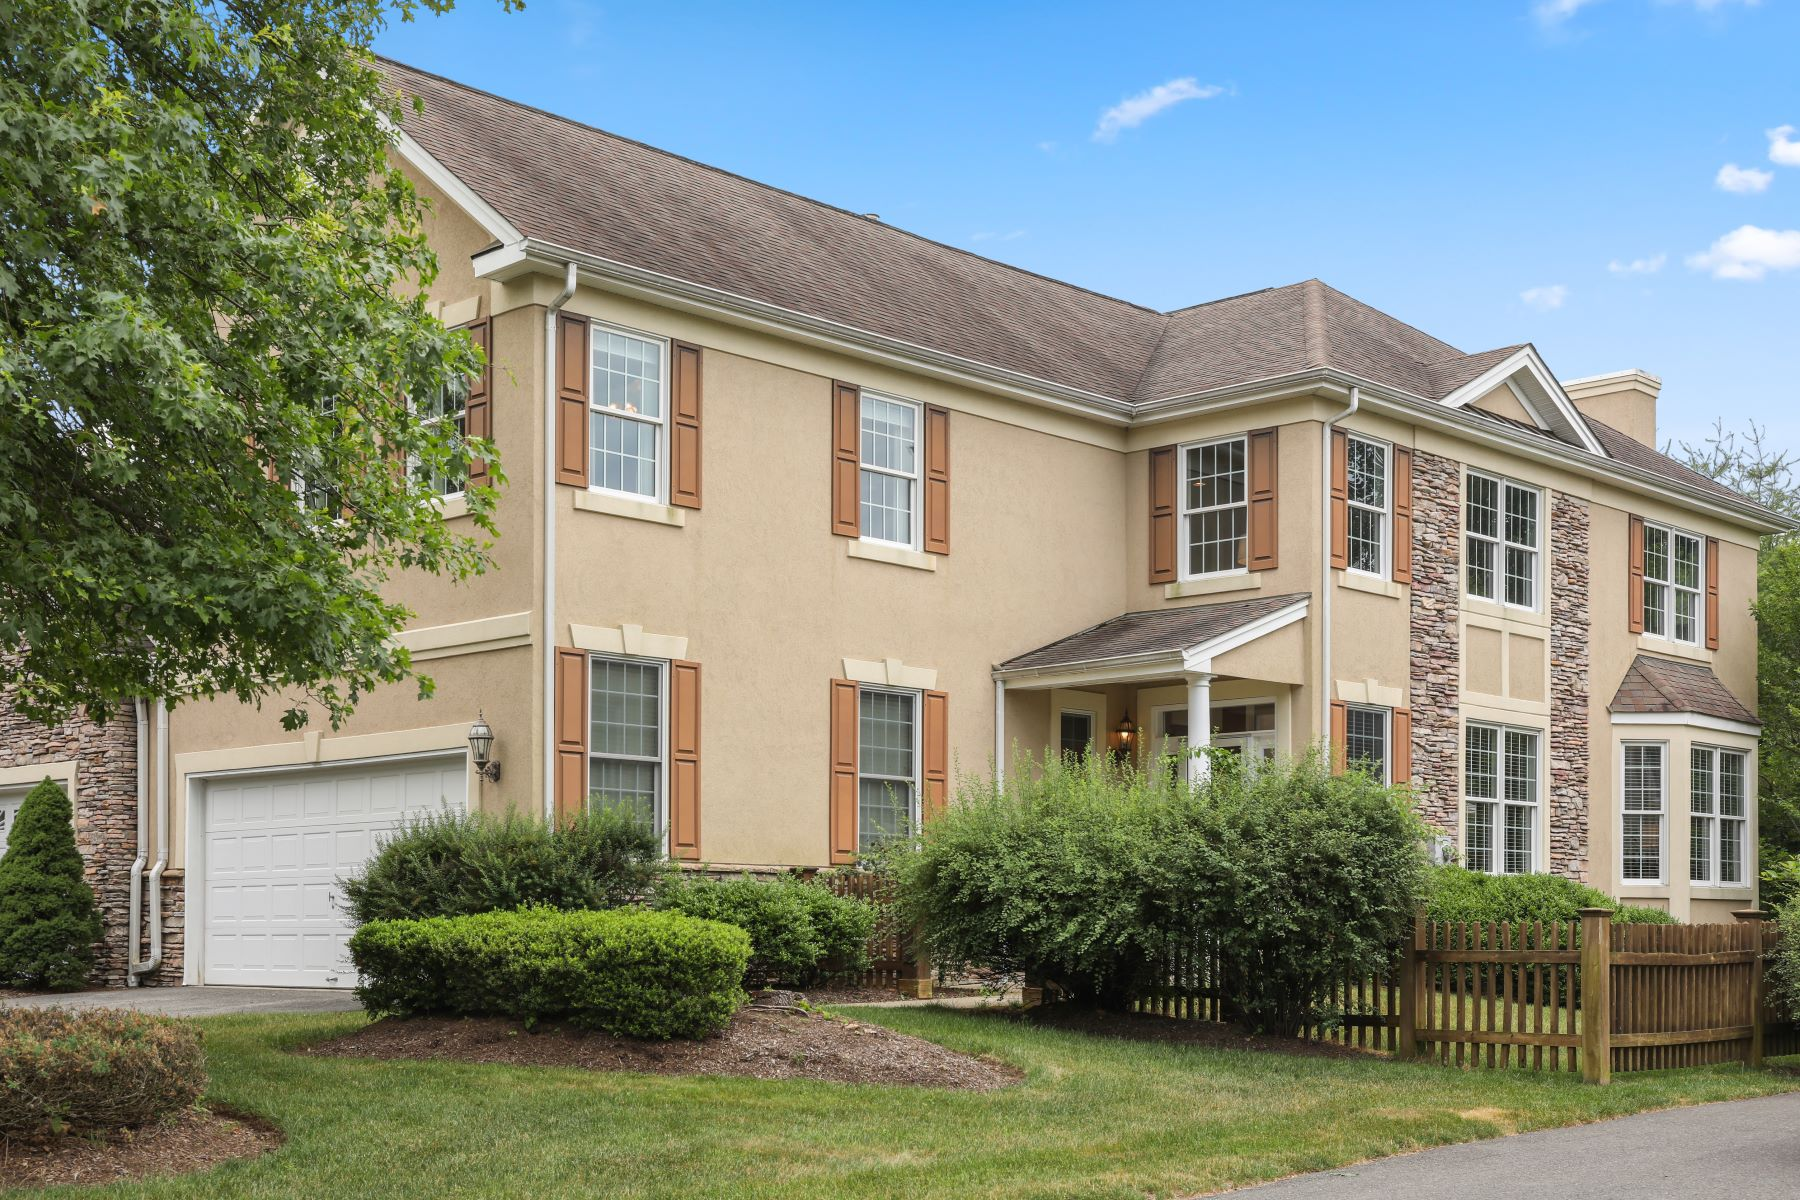 townhouses for Sale at Maintained Townhome 25 Wyckoff Way, Chester Township, New Jersey 07930 United States